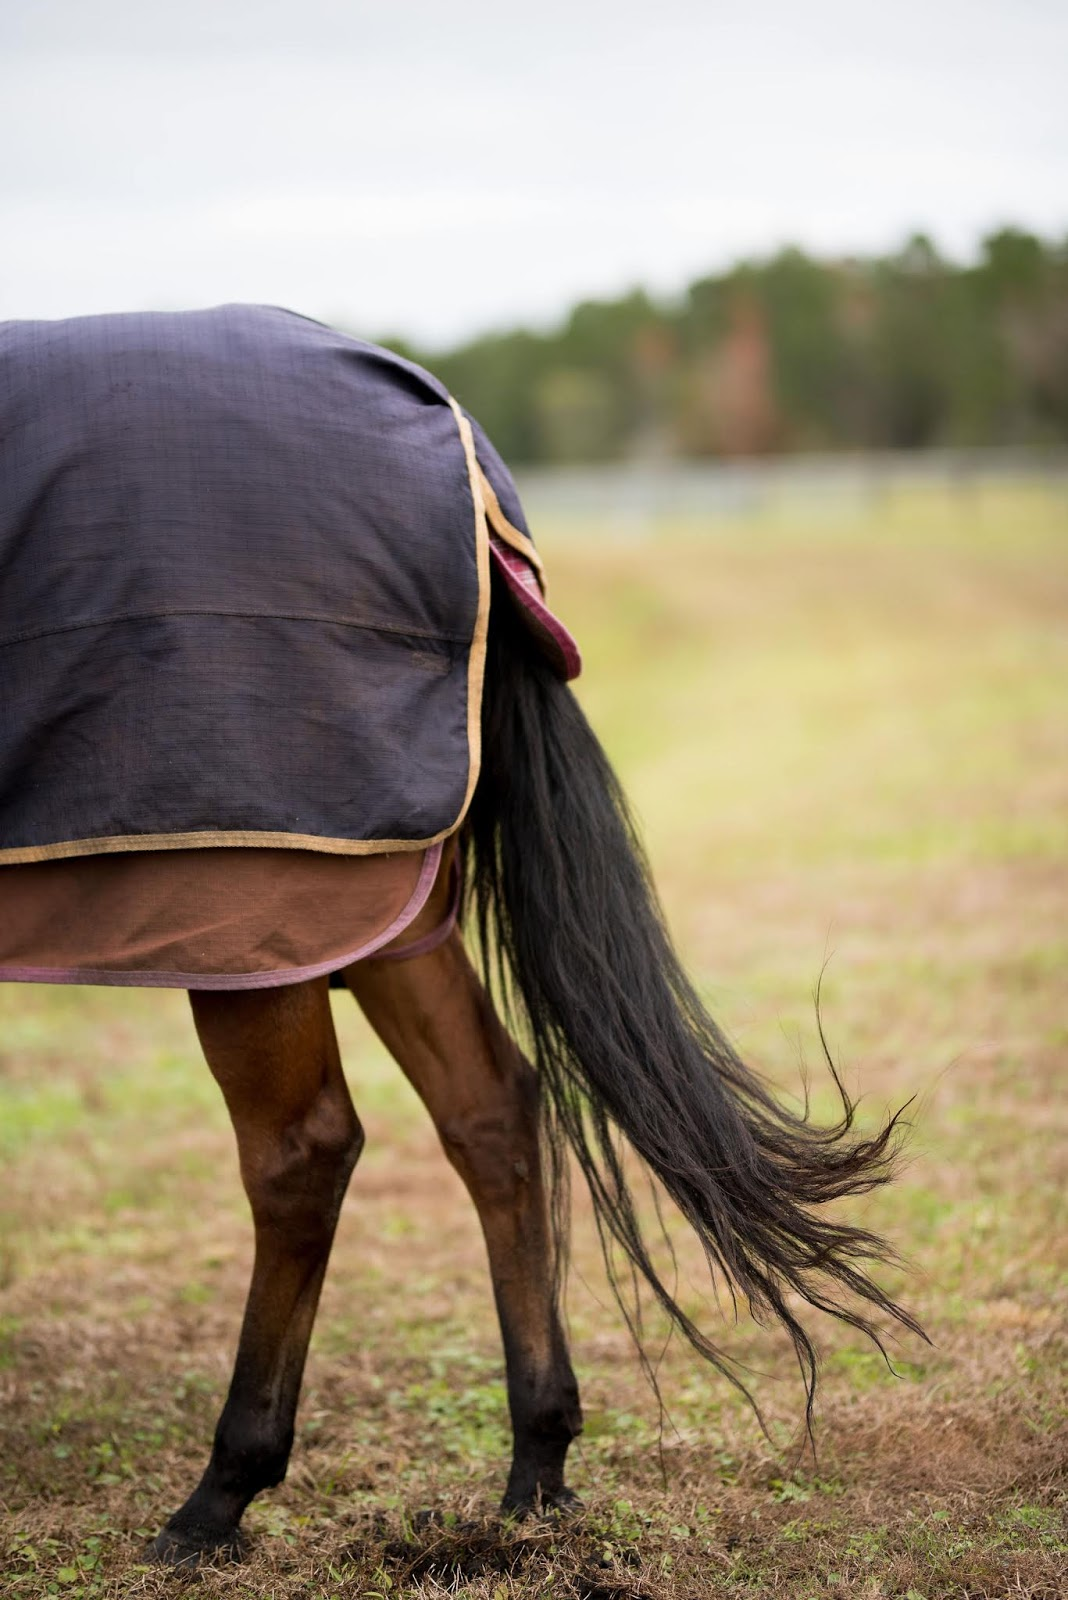 Bay quarter horse wearing sheet and blanket outside at farm in jacksonville or saint augustine florida